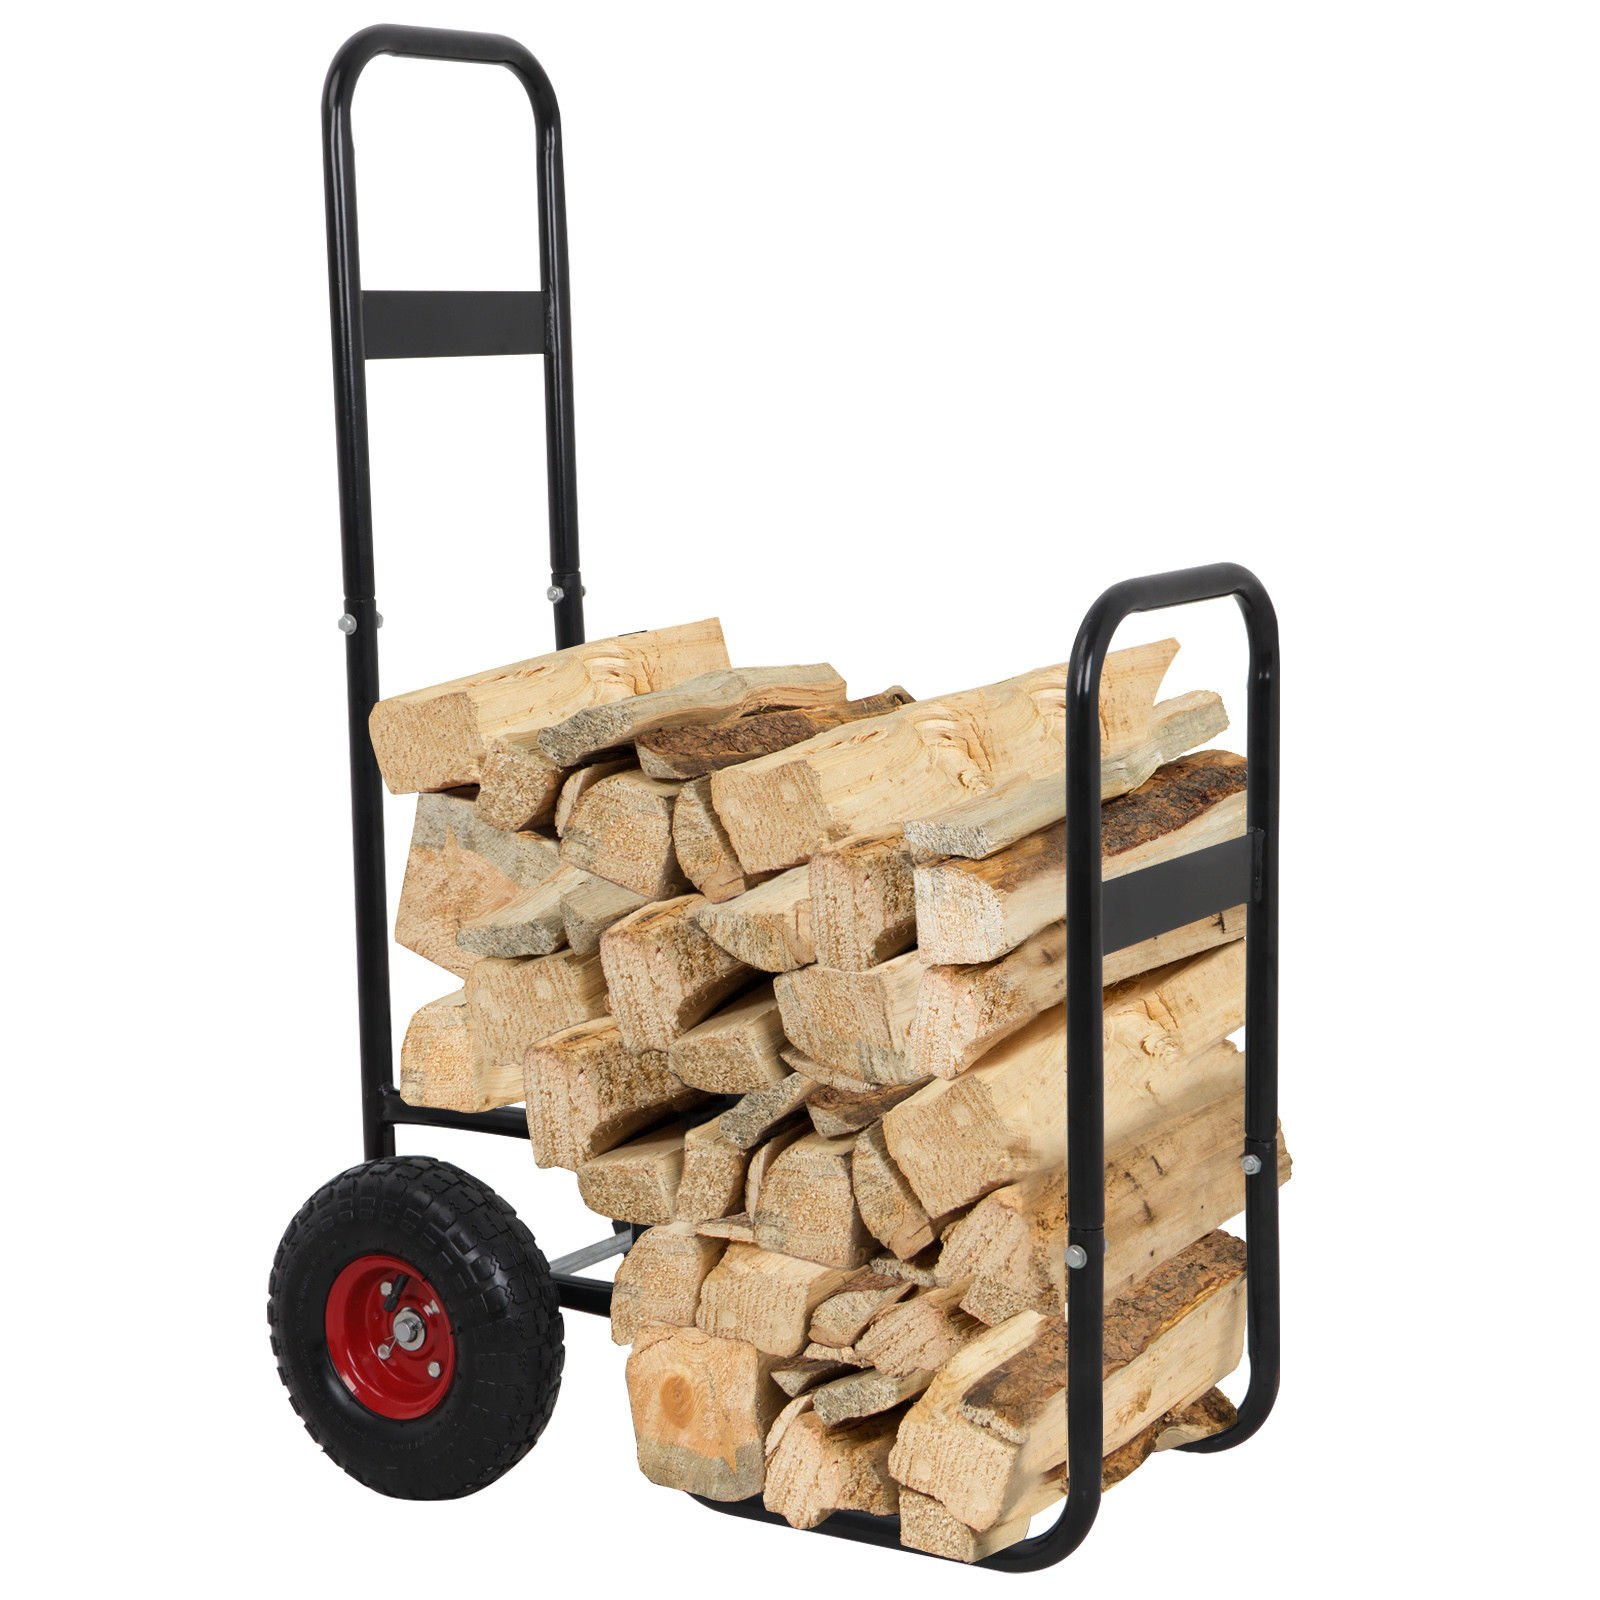 ZENY Firewood Fireplace Log Rack Cart Carrier Fireside Shelter Wood Mover, Rolling Fire Storage Cart Dolly,Indoor Outdoor Use